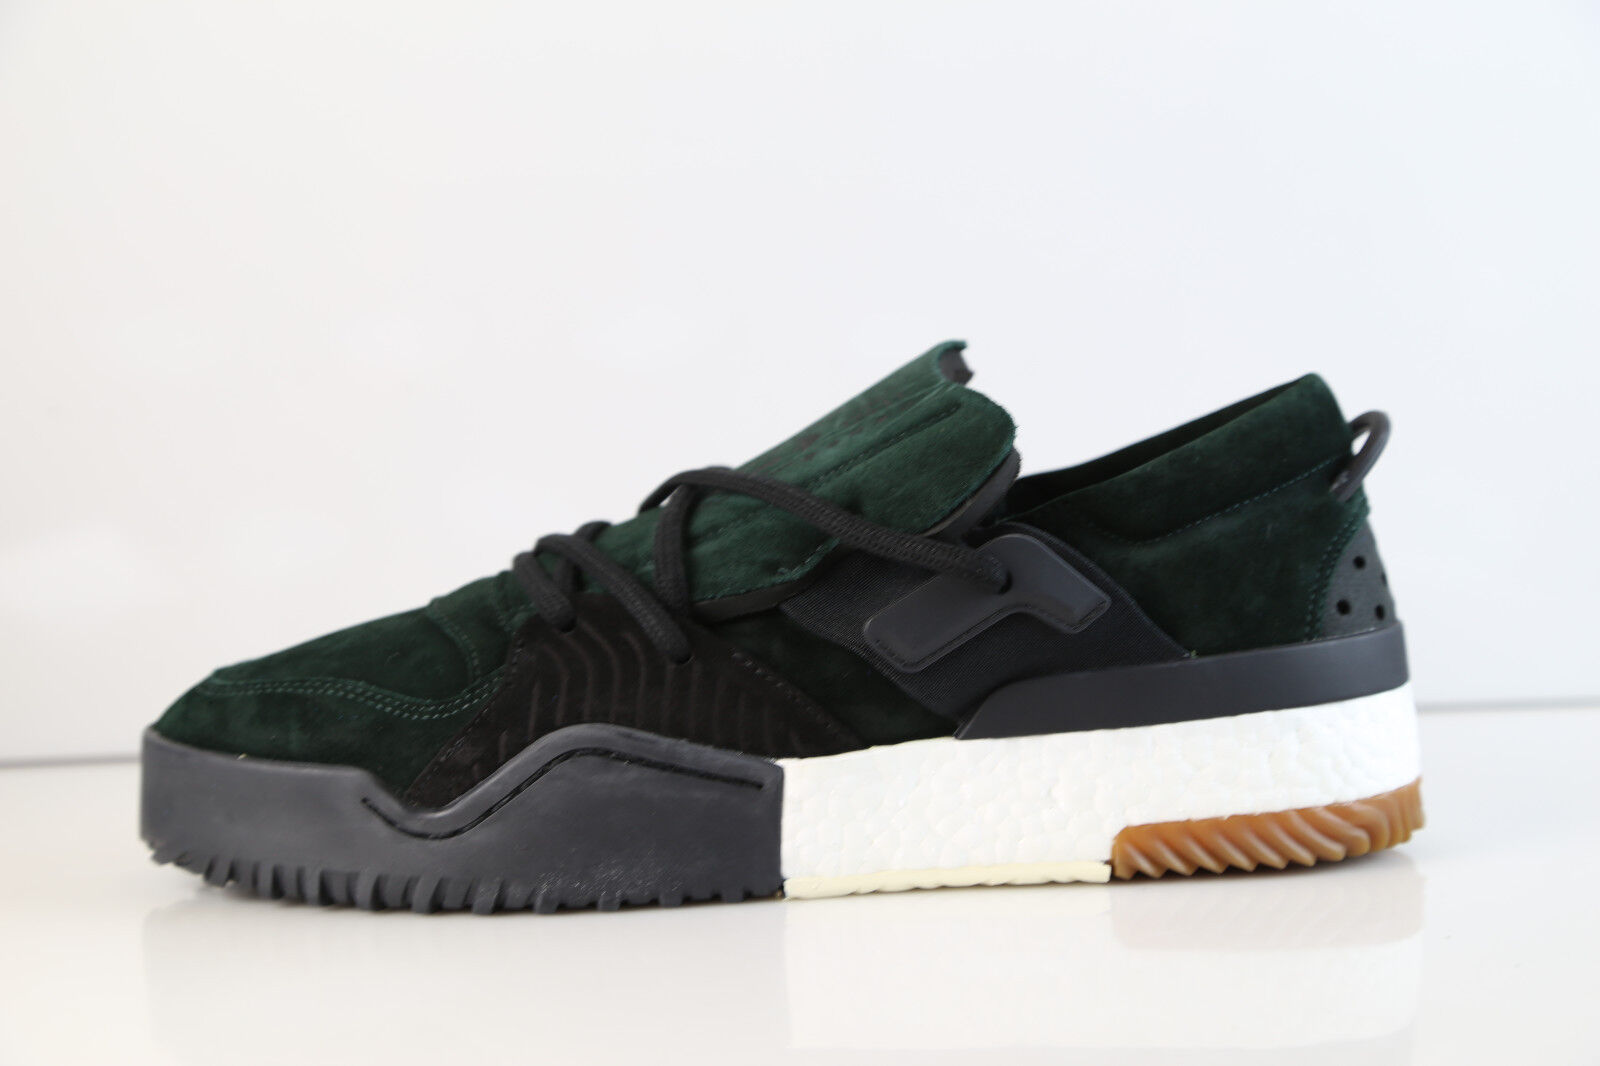 Adidas Alexander Wang AW BBALL Low Low Low verde Suede nero DA9309 8-12 boost 43ab9f